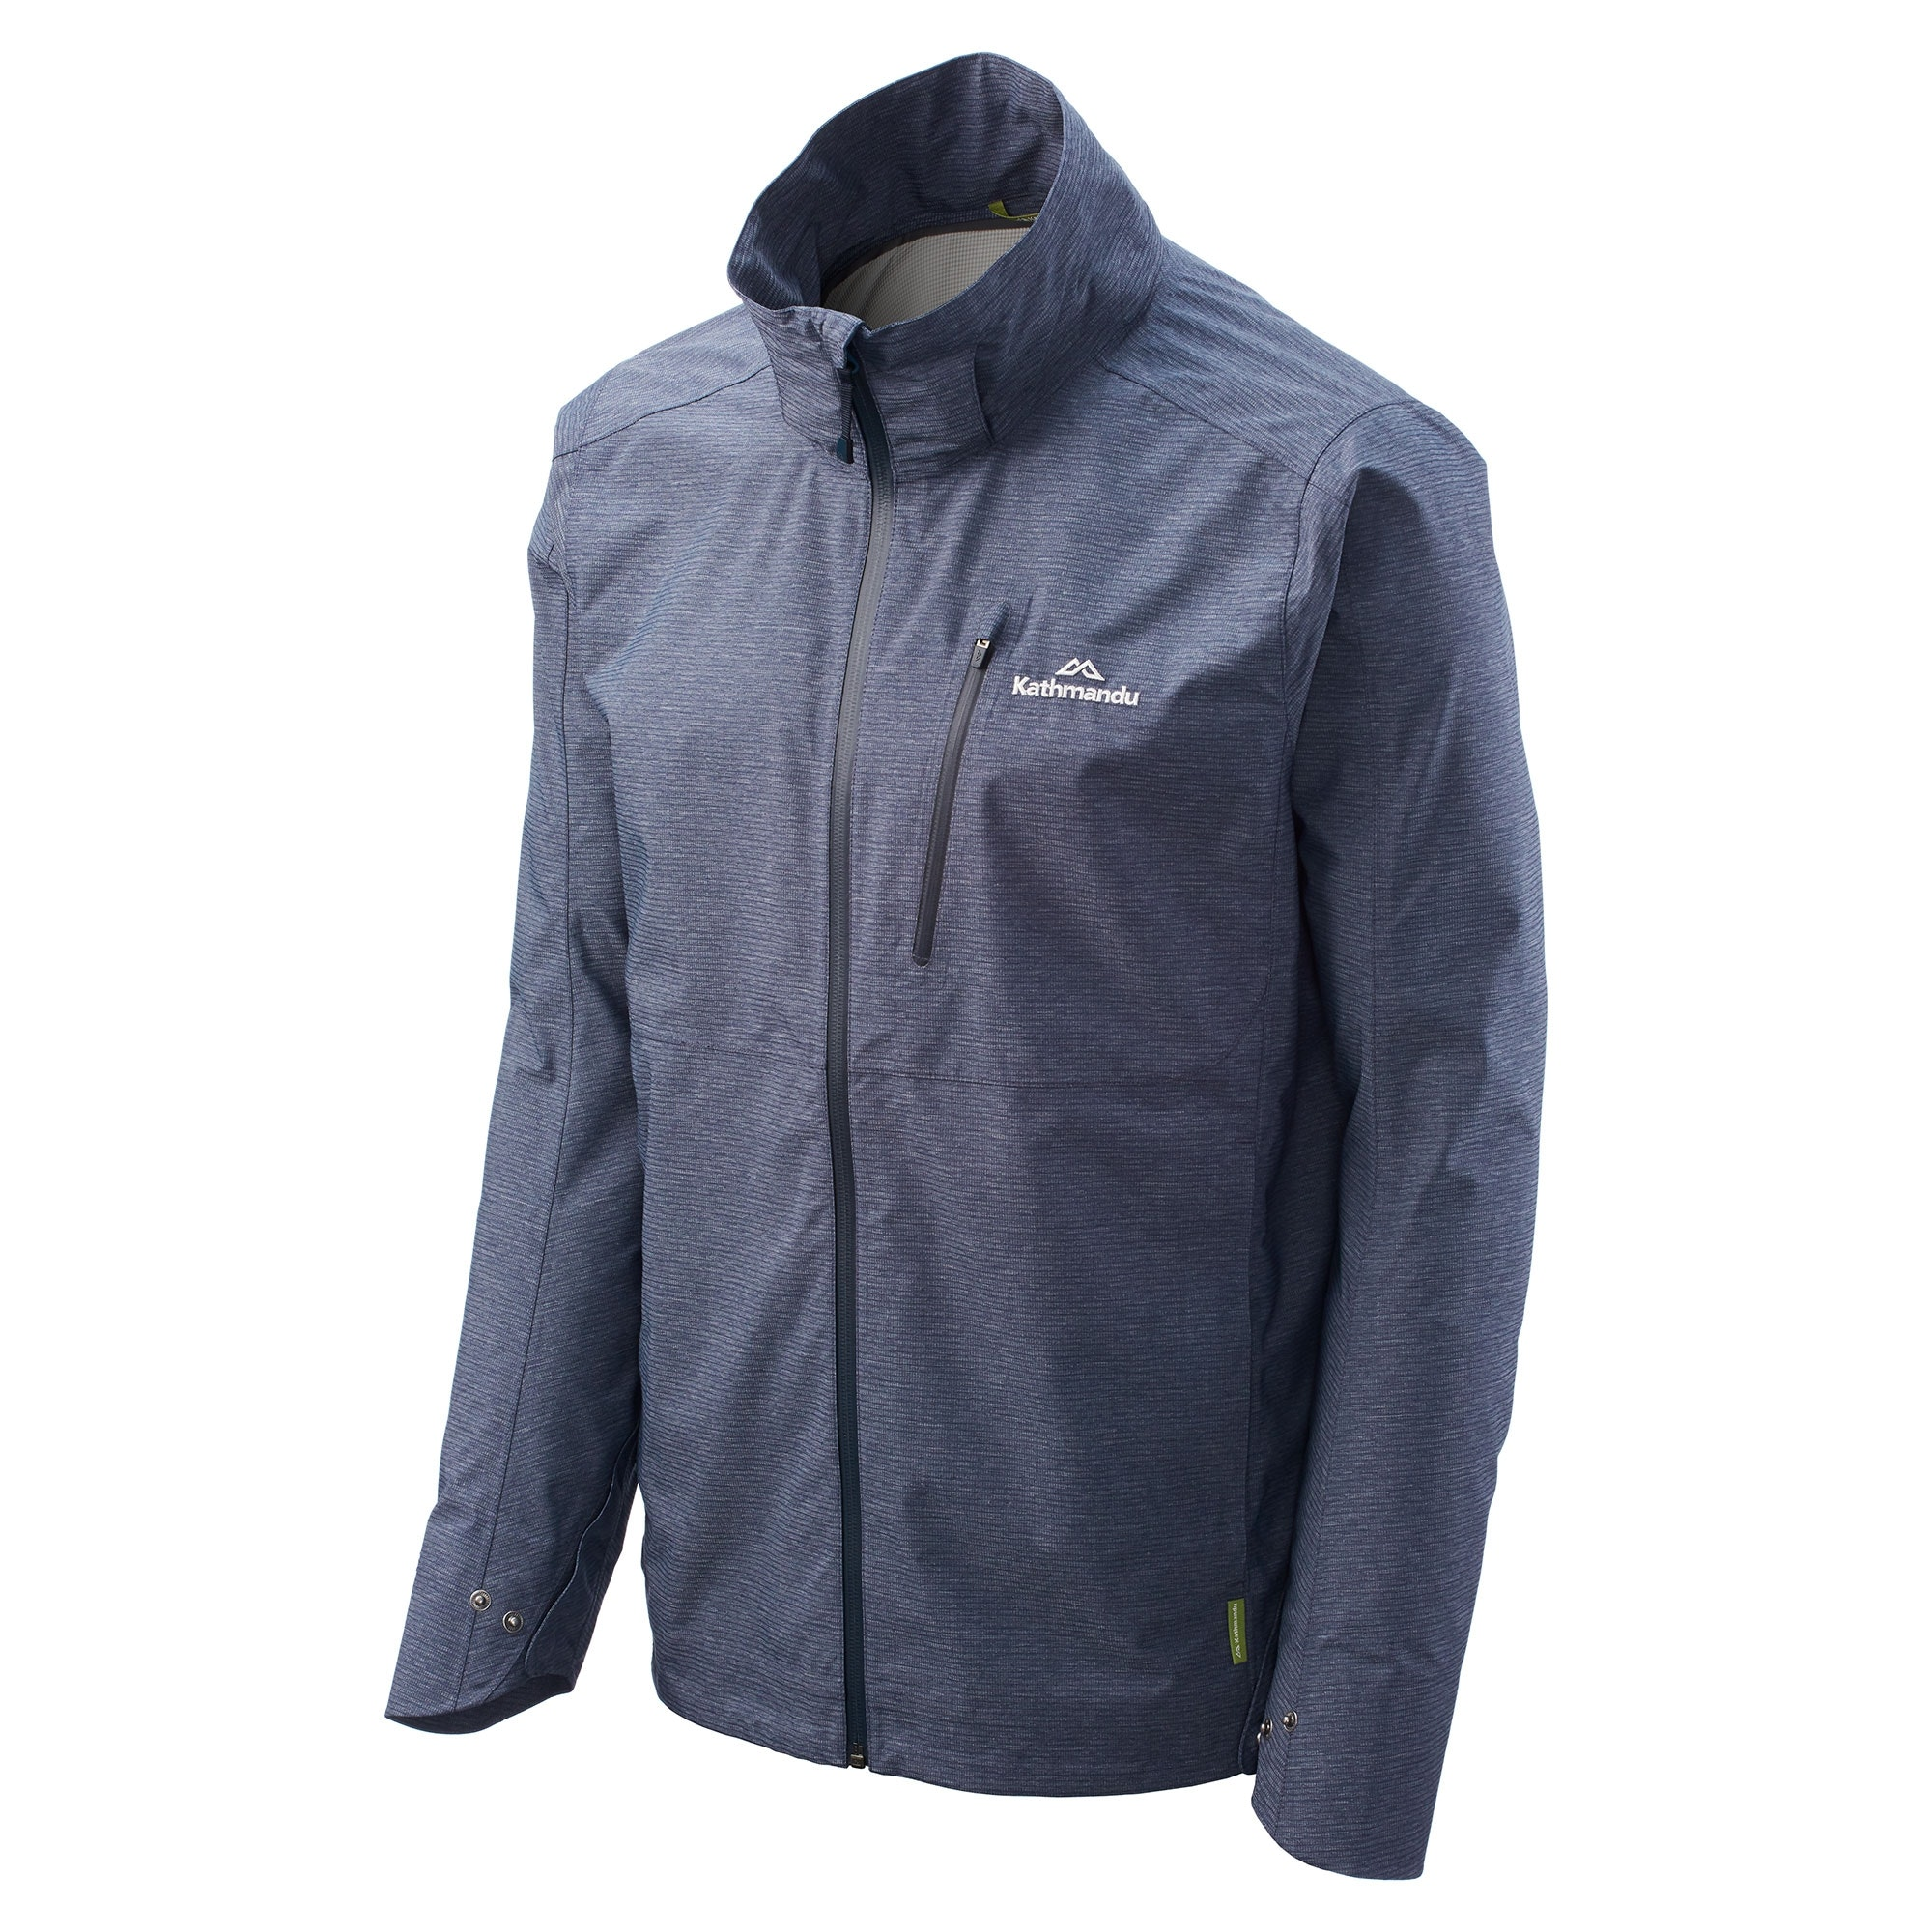 NEW-Kathmandu-Lawrence-Men-039-s-ngx-Windproof-Waterproof-Outdoor-Rain-Jacket-v2 thumbnail 14